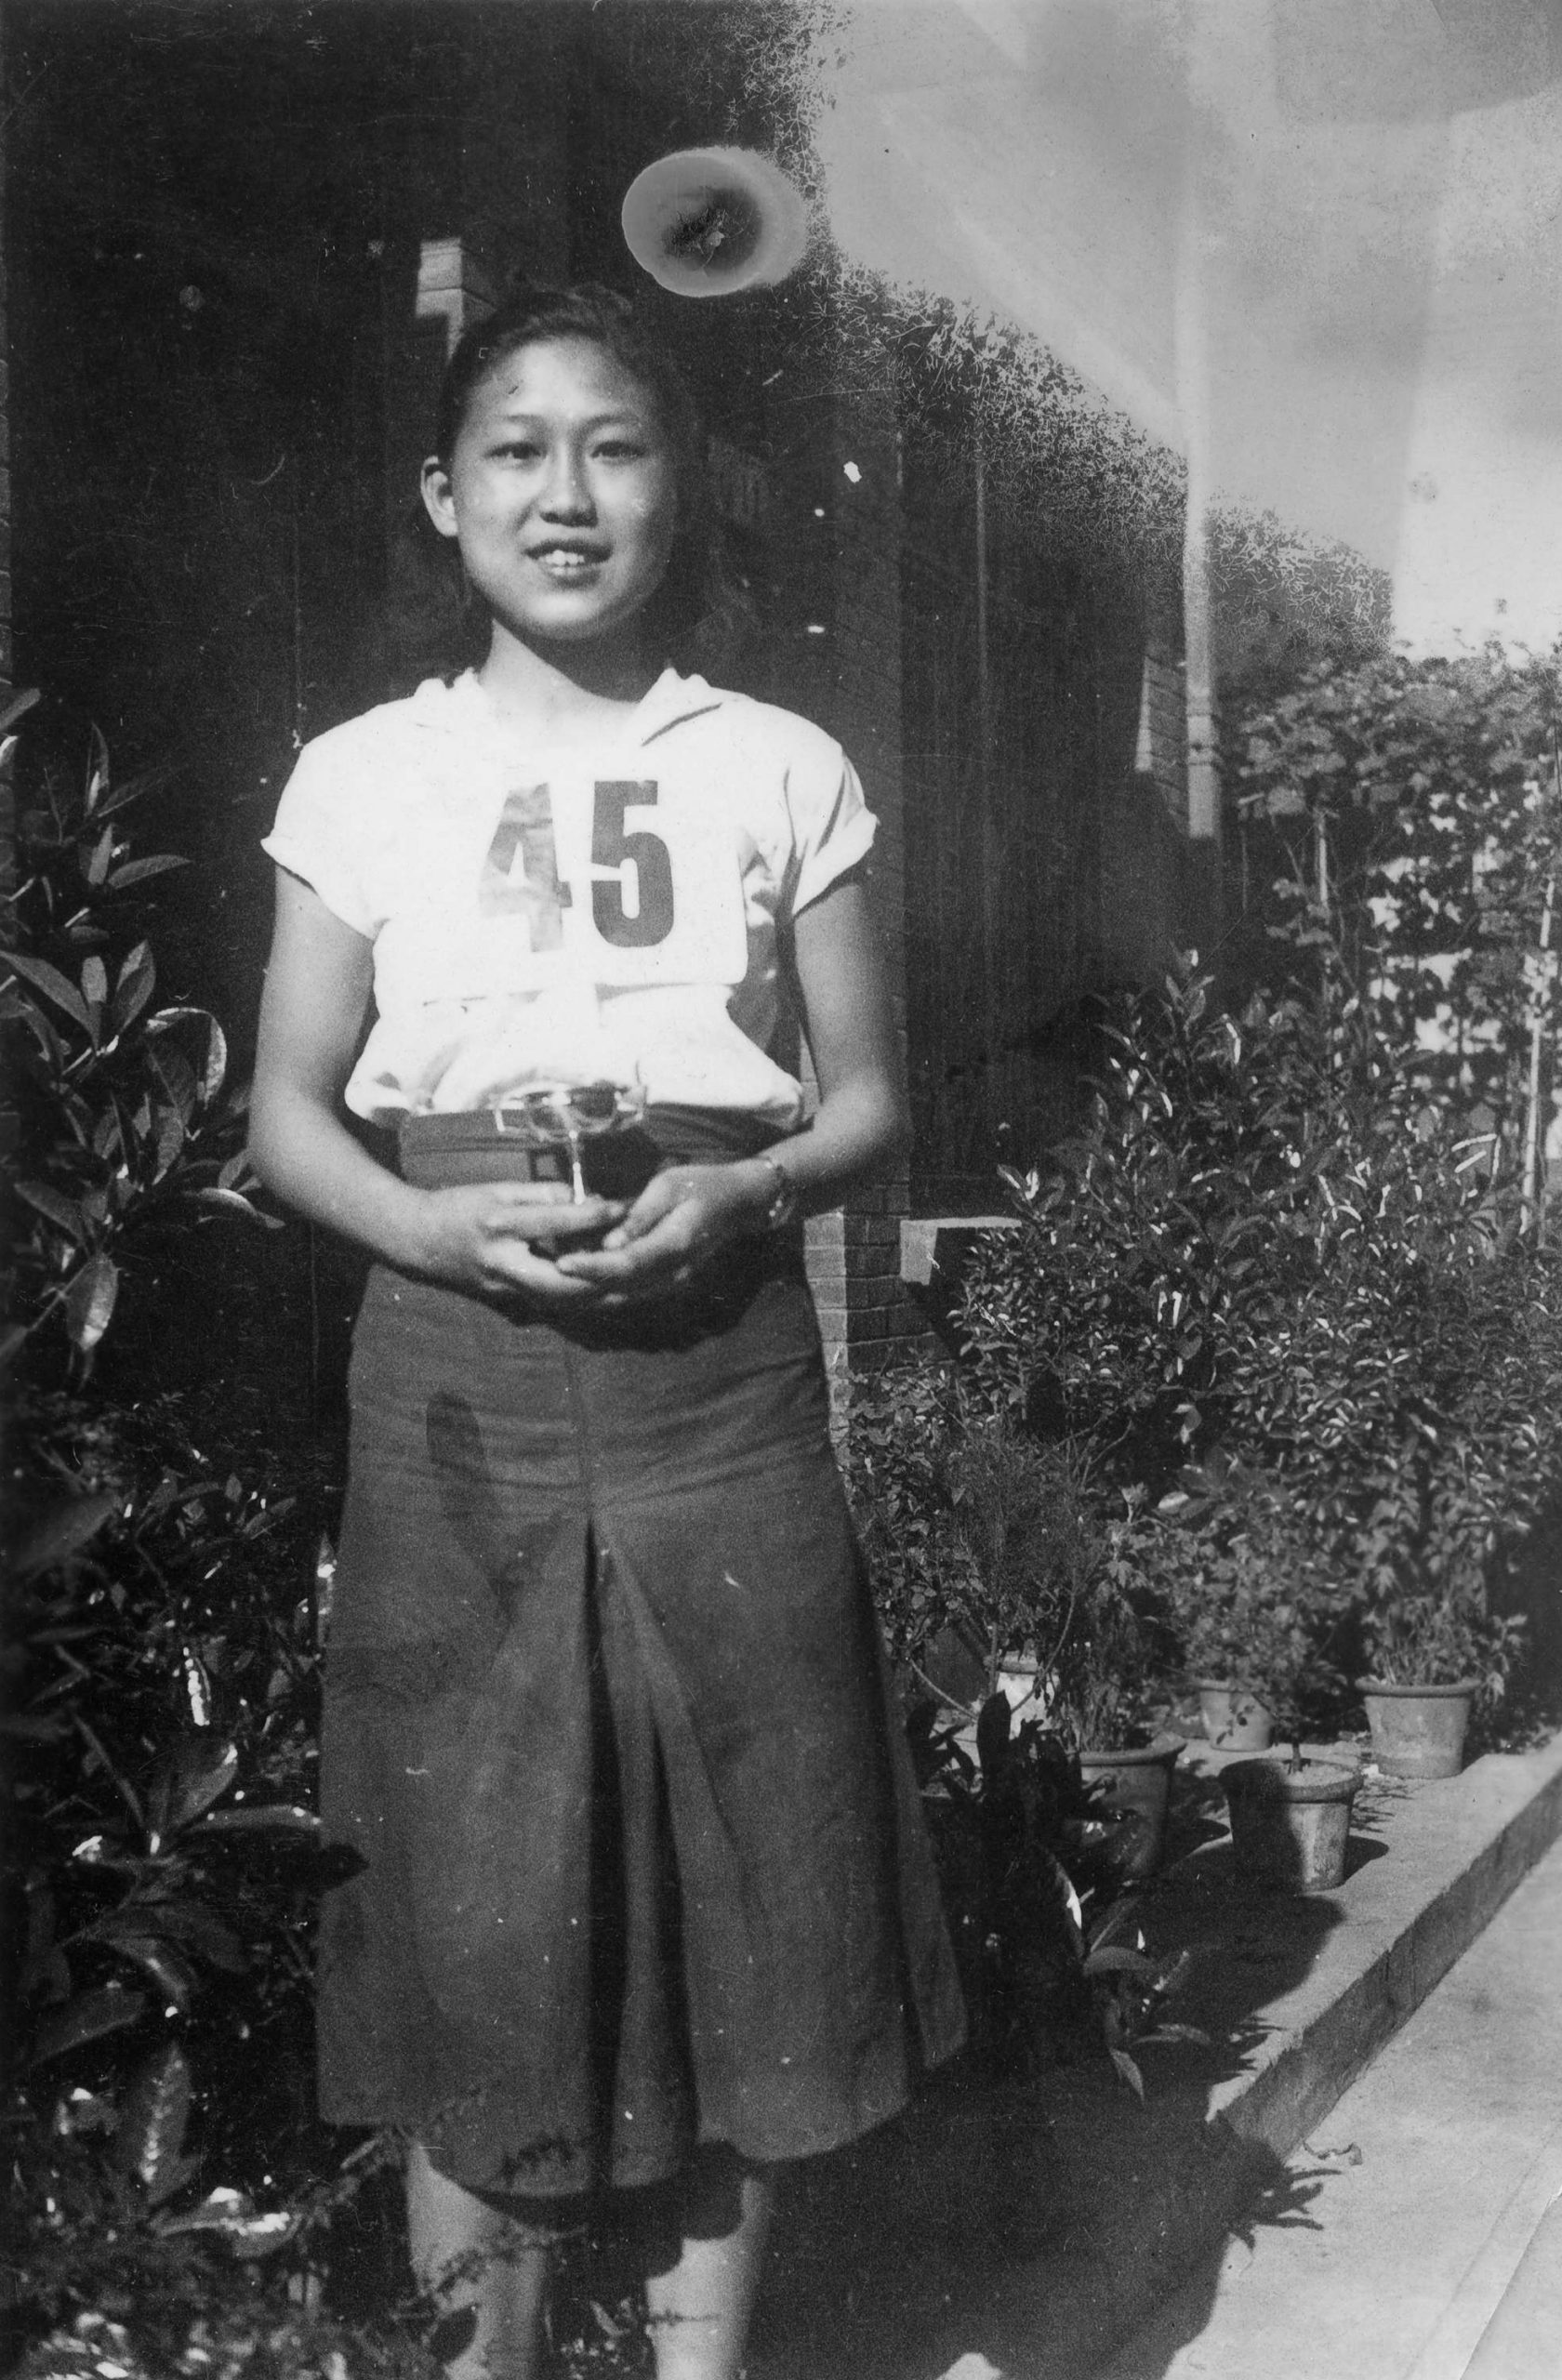 Winnie Eng with her winning trophy. Reference code: AM1523-S5-1-F089-: 2008-010.3540